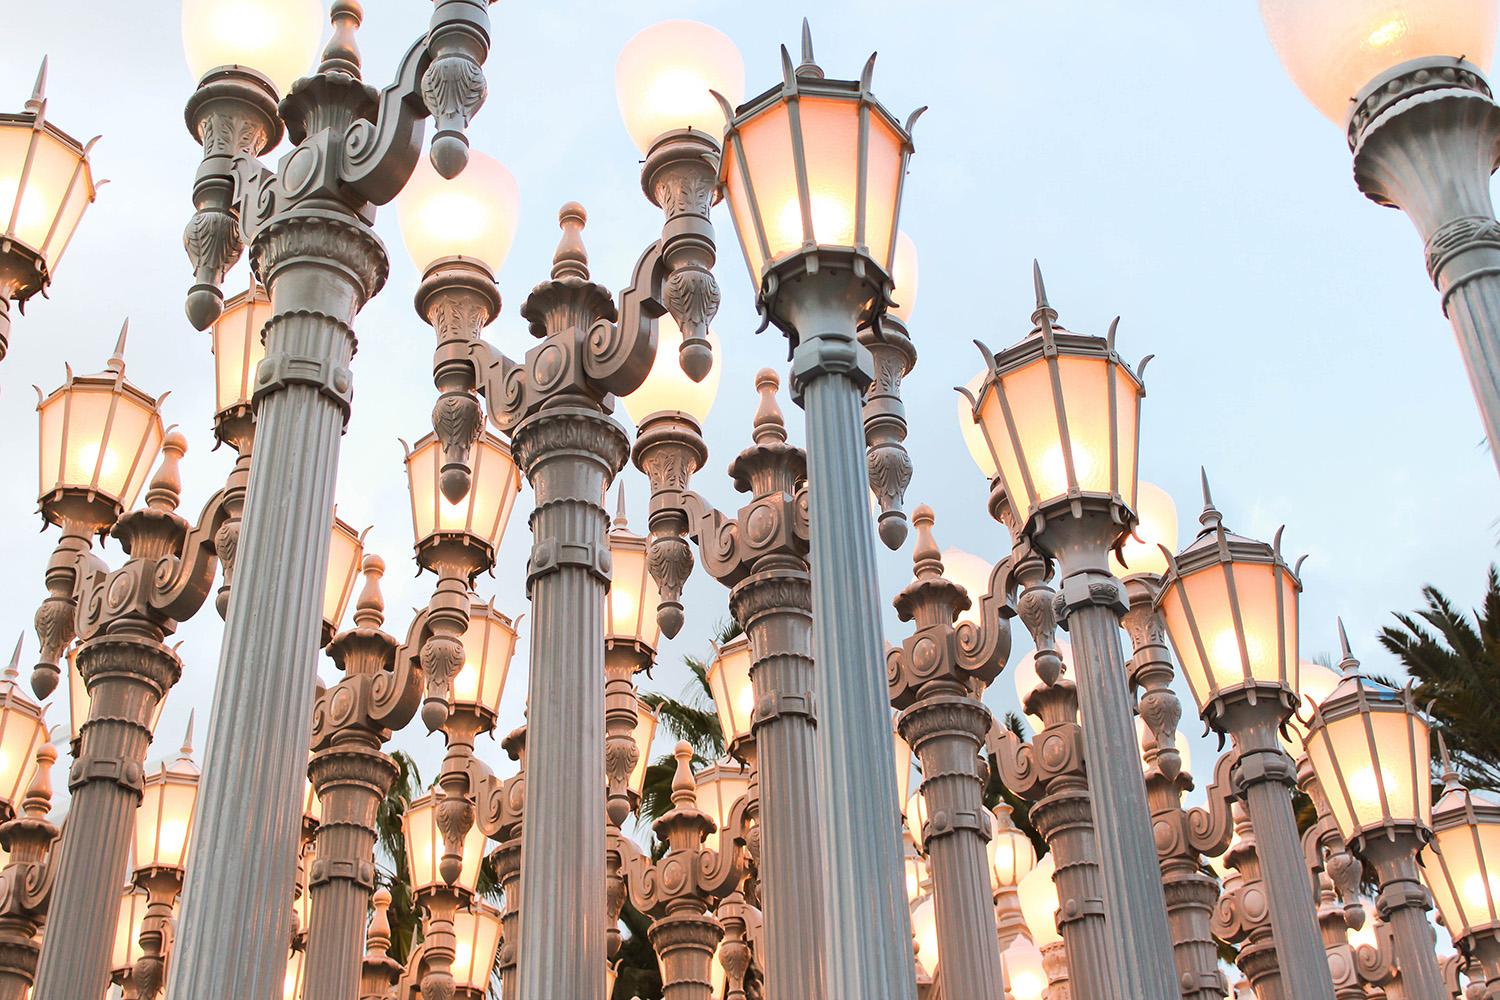 Urban Light at LACMA: contemporary art by Chris Burden - 202 restored cast iron street lamps - a blogger/photographer's paradise.